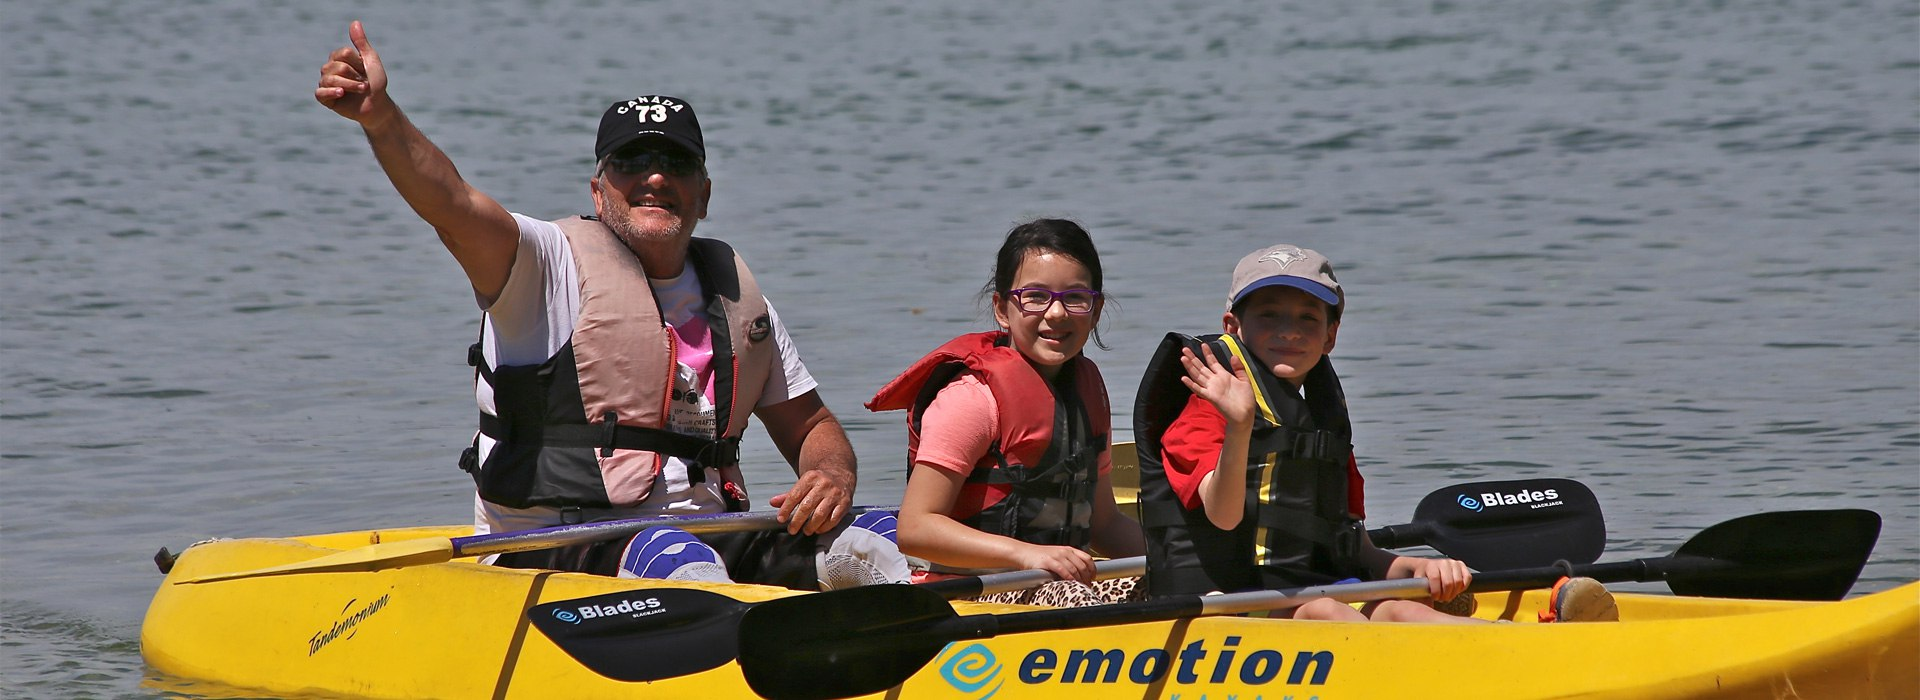 image: Disabled veteran and children in a canoe